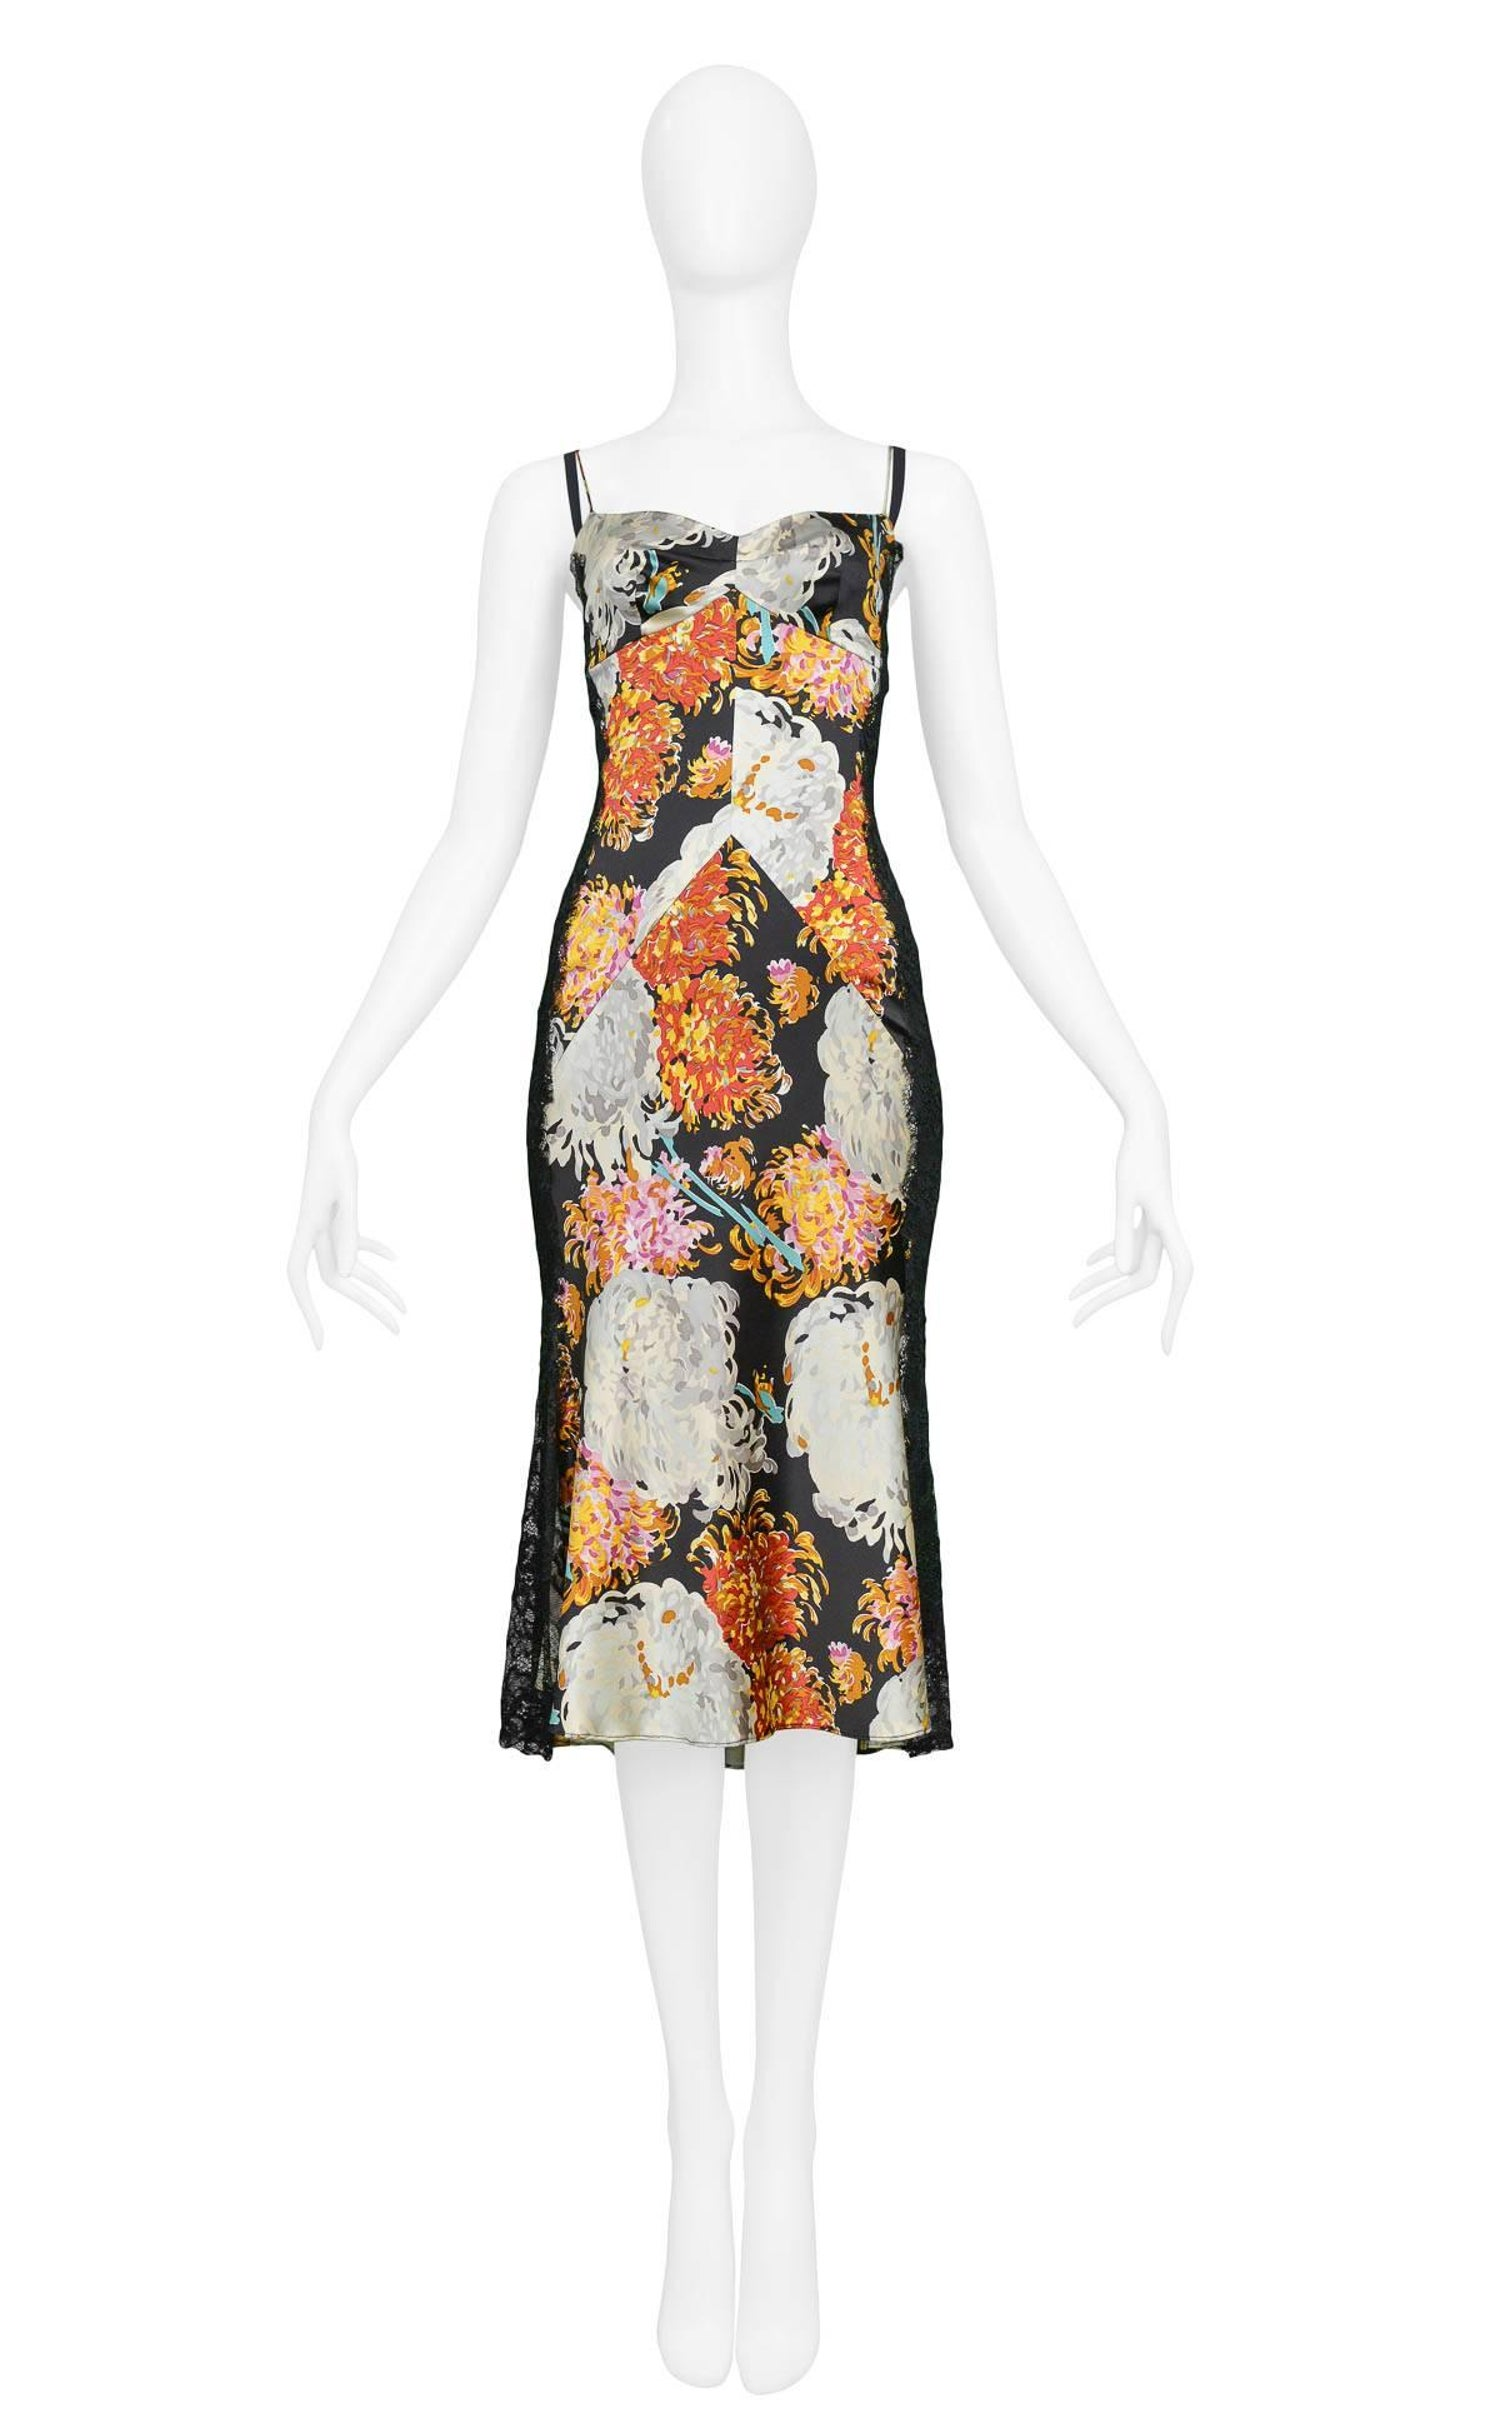 b86bff0fc0 Sexy Dolce and Gabbana Satin Floral Print Cocktail Dress with Black Lace  Insets at 1stdibs